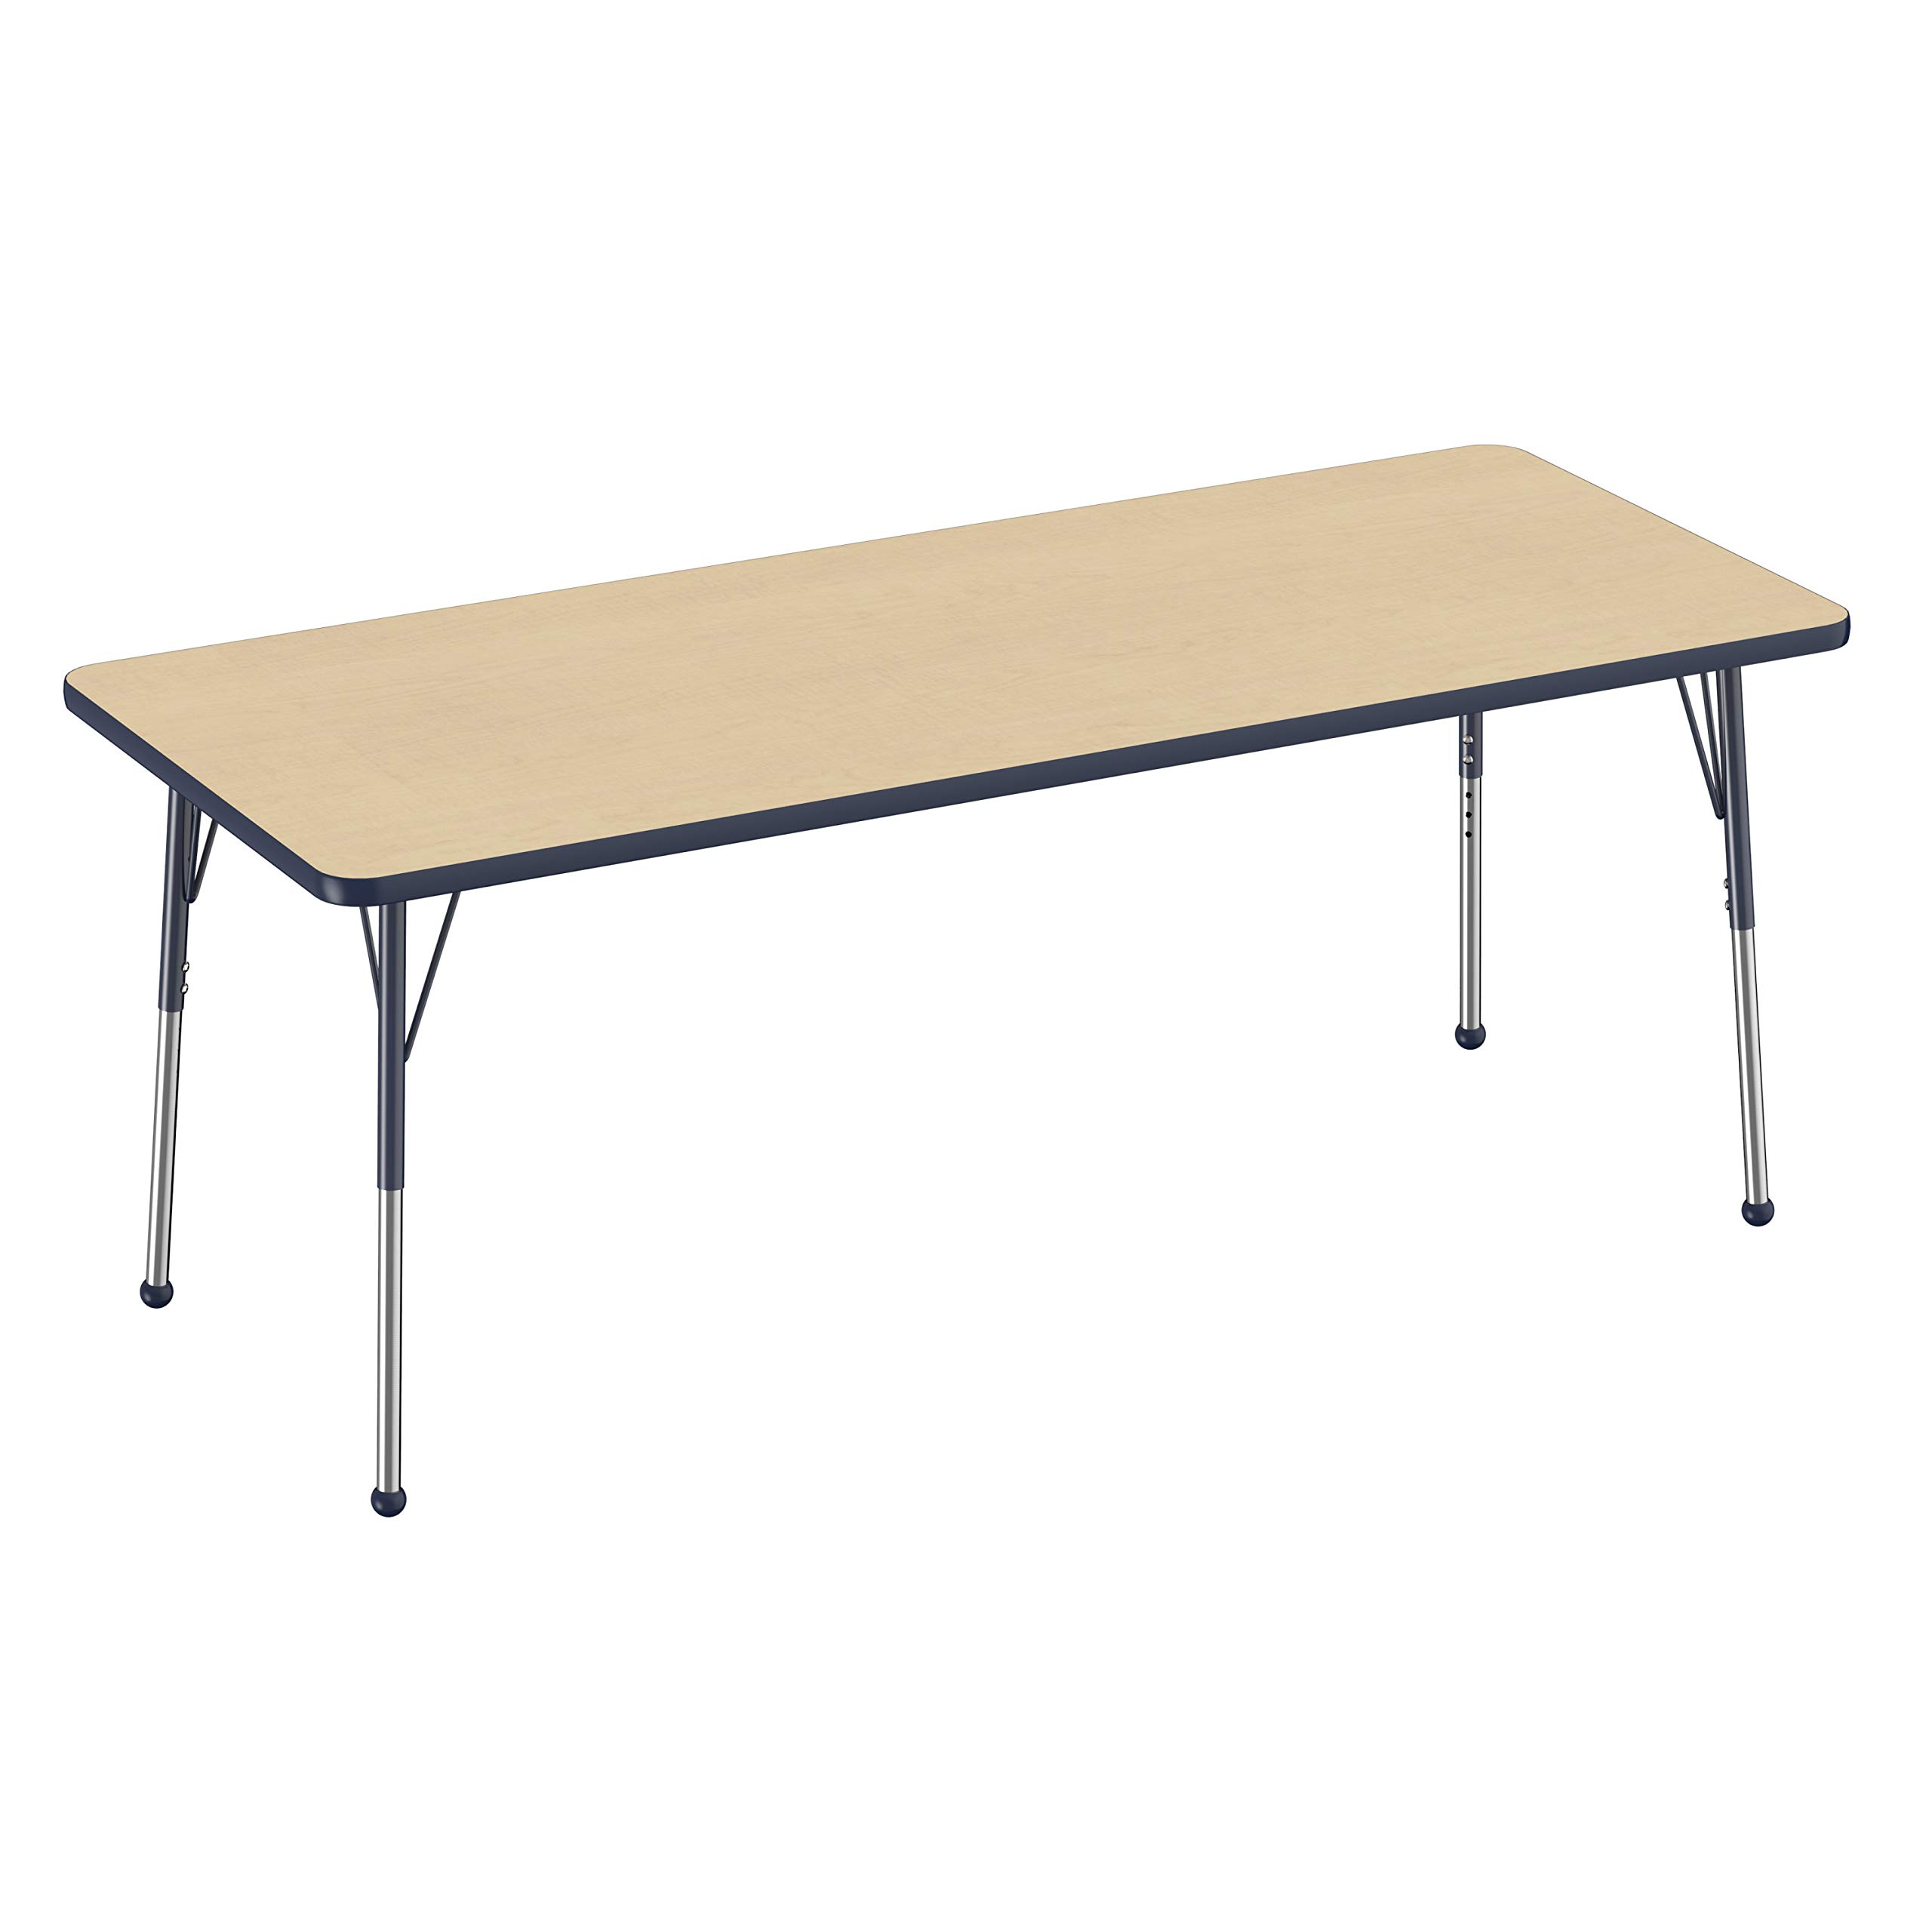 FDP Rectangle Activity School and Office Table (30 x 72 inch), Standard Legs with Ball Glides, Adjustable Height 19-30 inches - Maple Top and Navy Edge